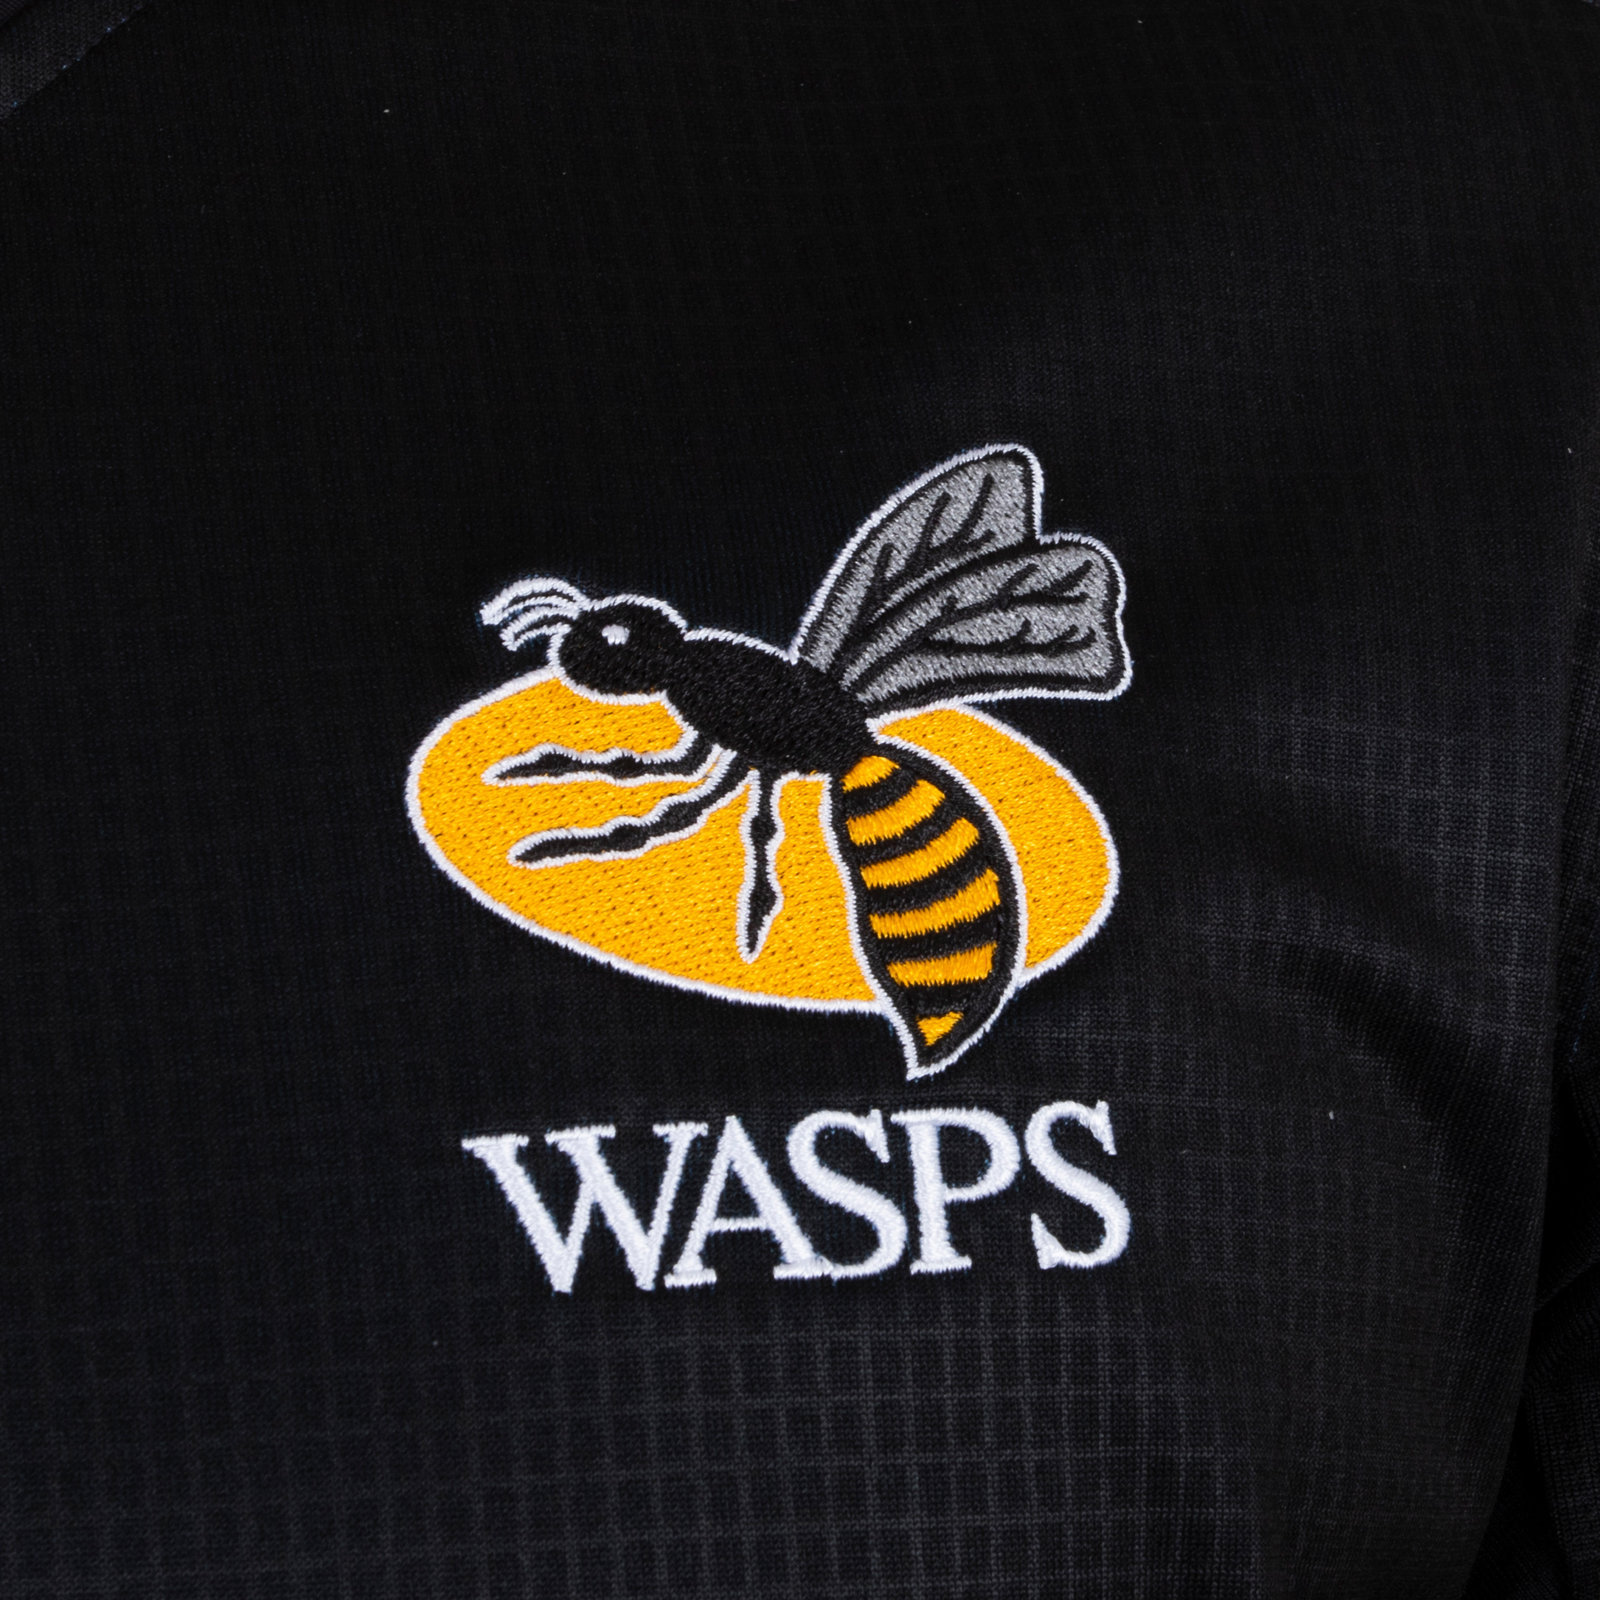 377e4fe56c7 Under Armour Mens Wasps 2018/19 Home Short Sleeve Replica Rugby Shirt Black